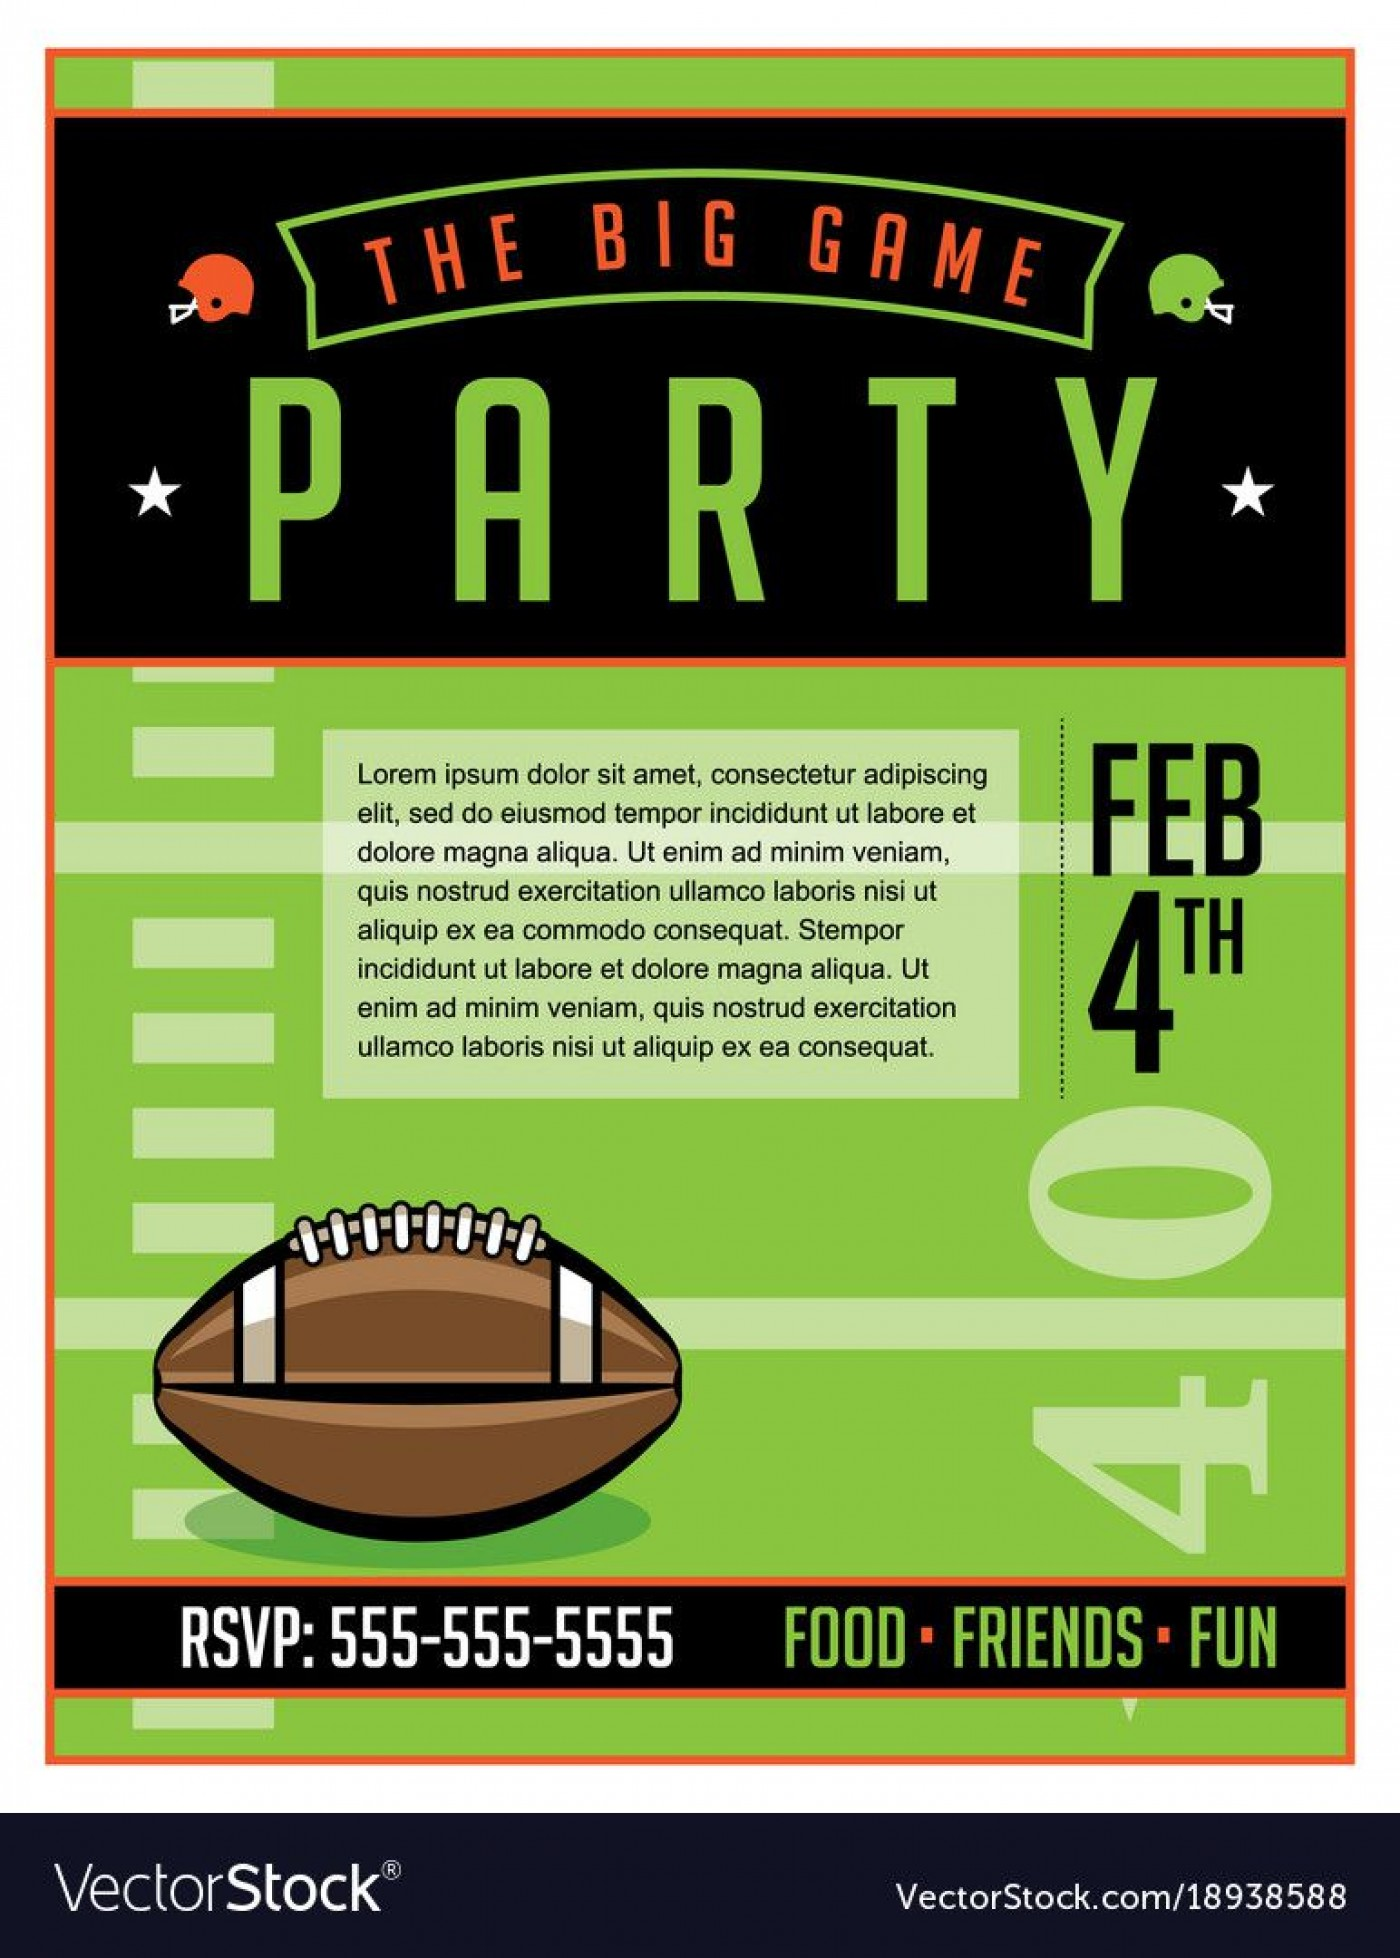 002 Surprising Free Tailgate Party Flyer Template Download Photo 1400